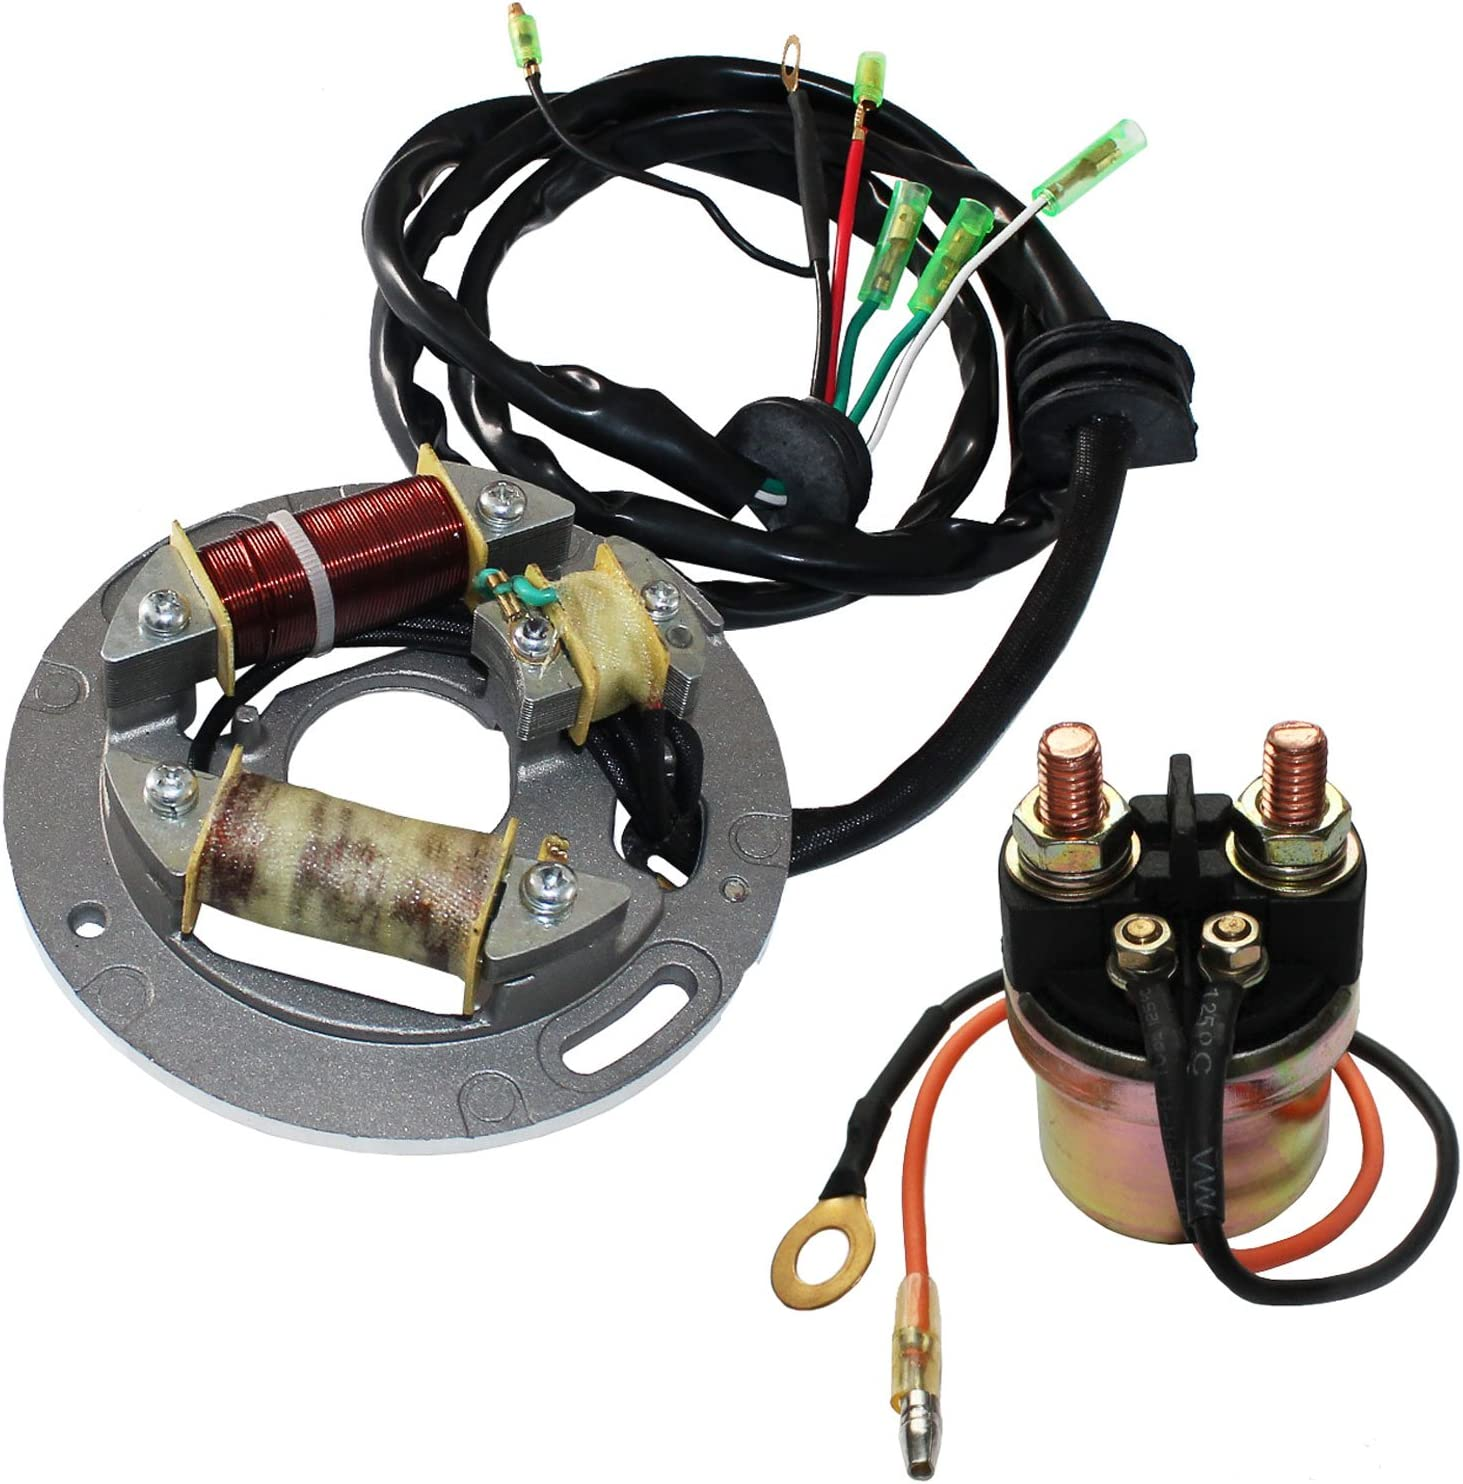 Virginia Beach Mall Caltric Stator Compatible With Yamaha Max 63% OFF Super Sj650 650 Sj-650 Jet